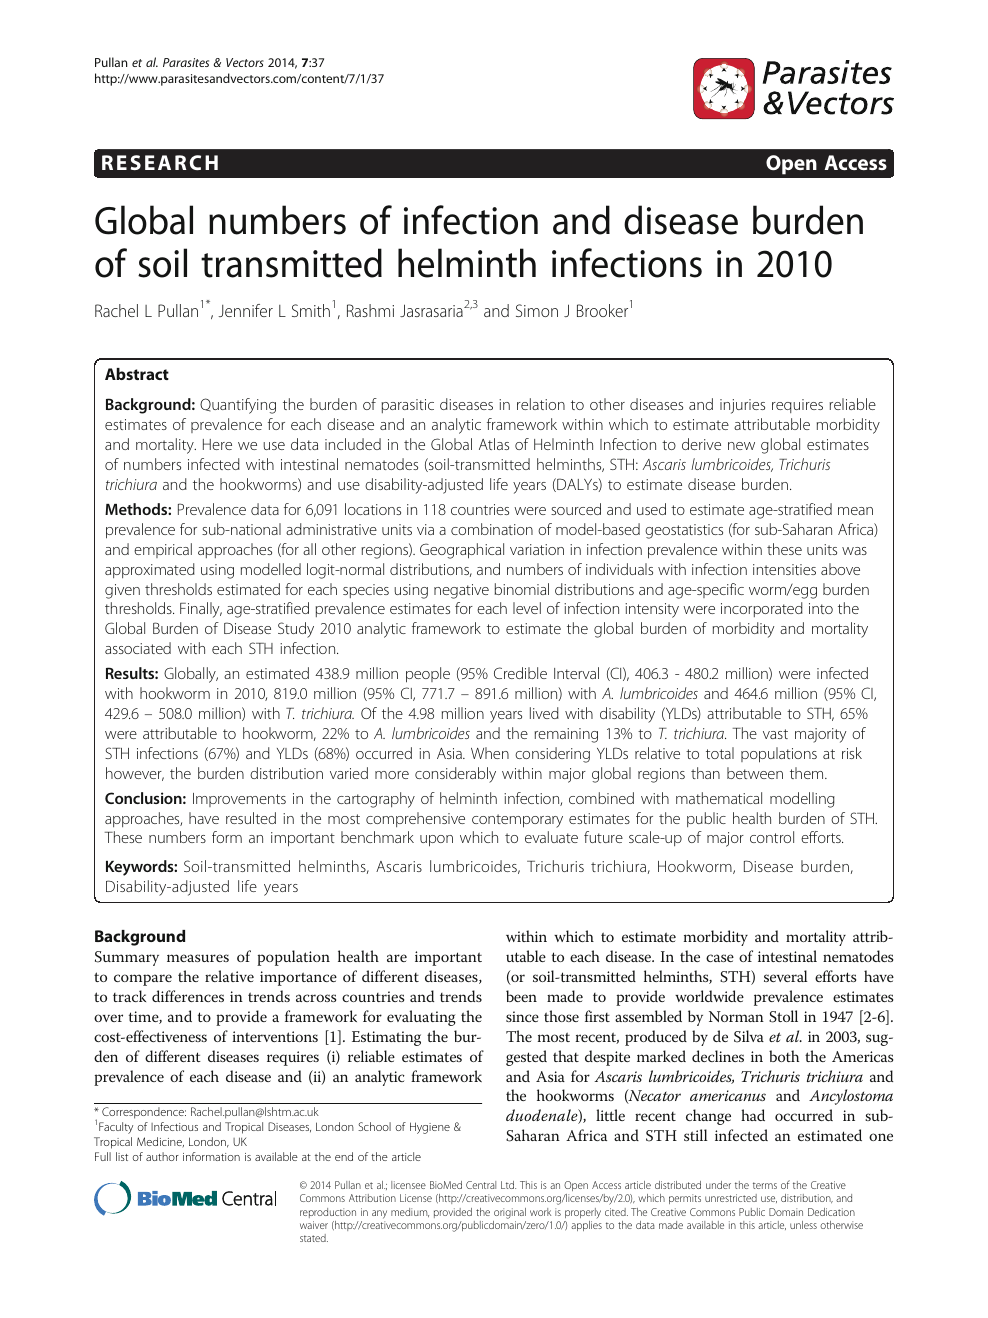 helminth infections and their impact on global public health)